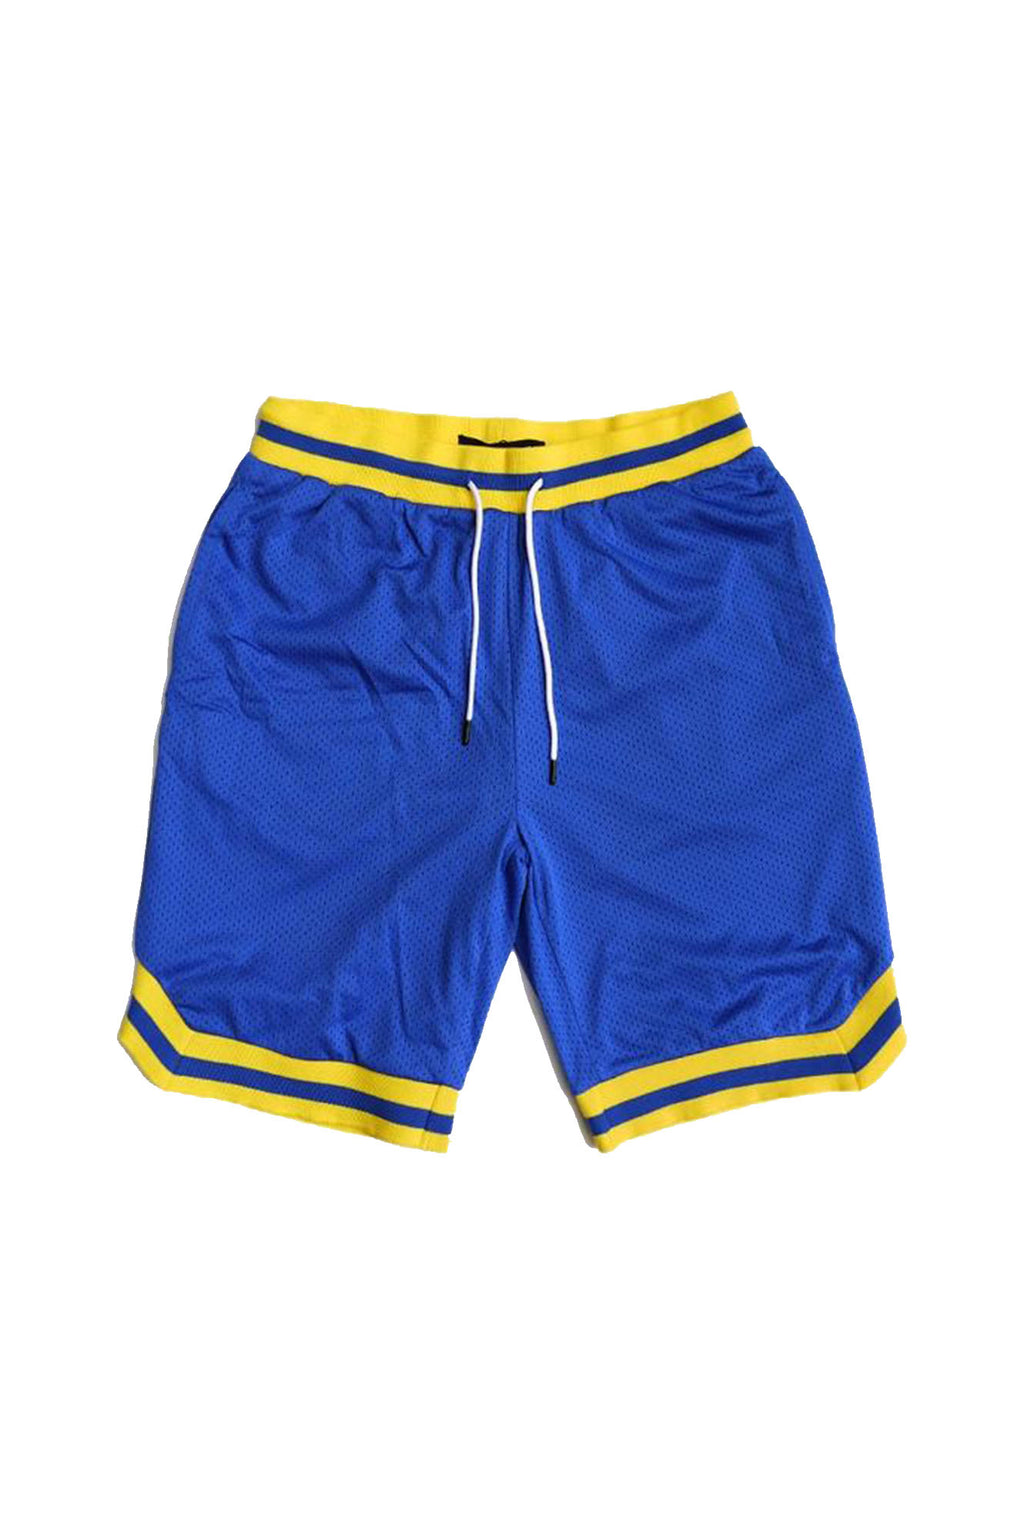 Aao Fashion Men Fashion Mesh Shorts